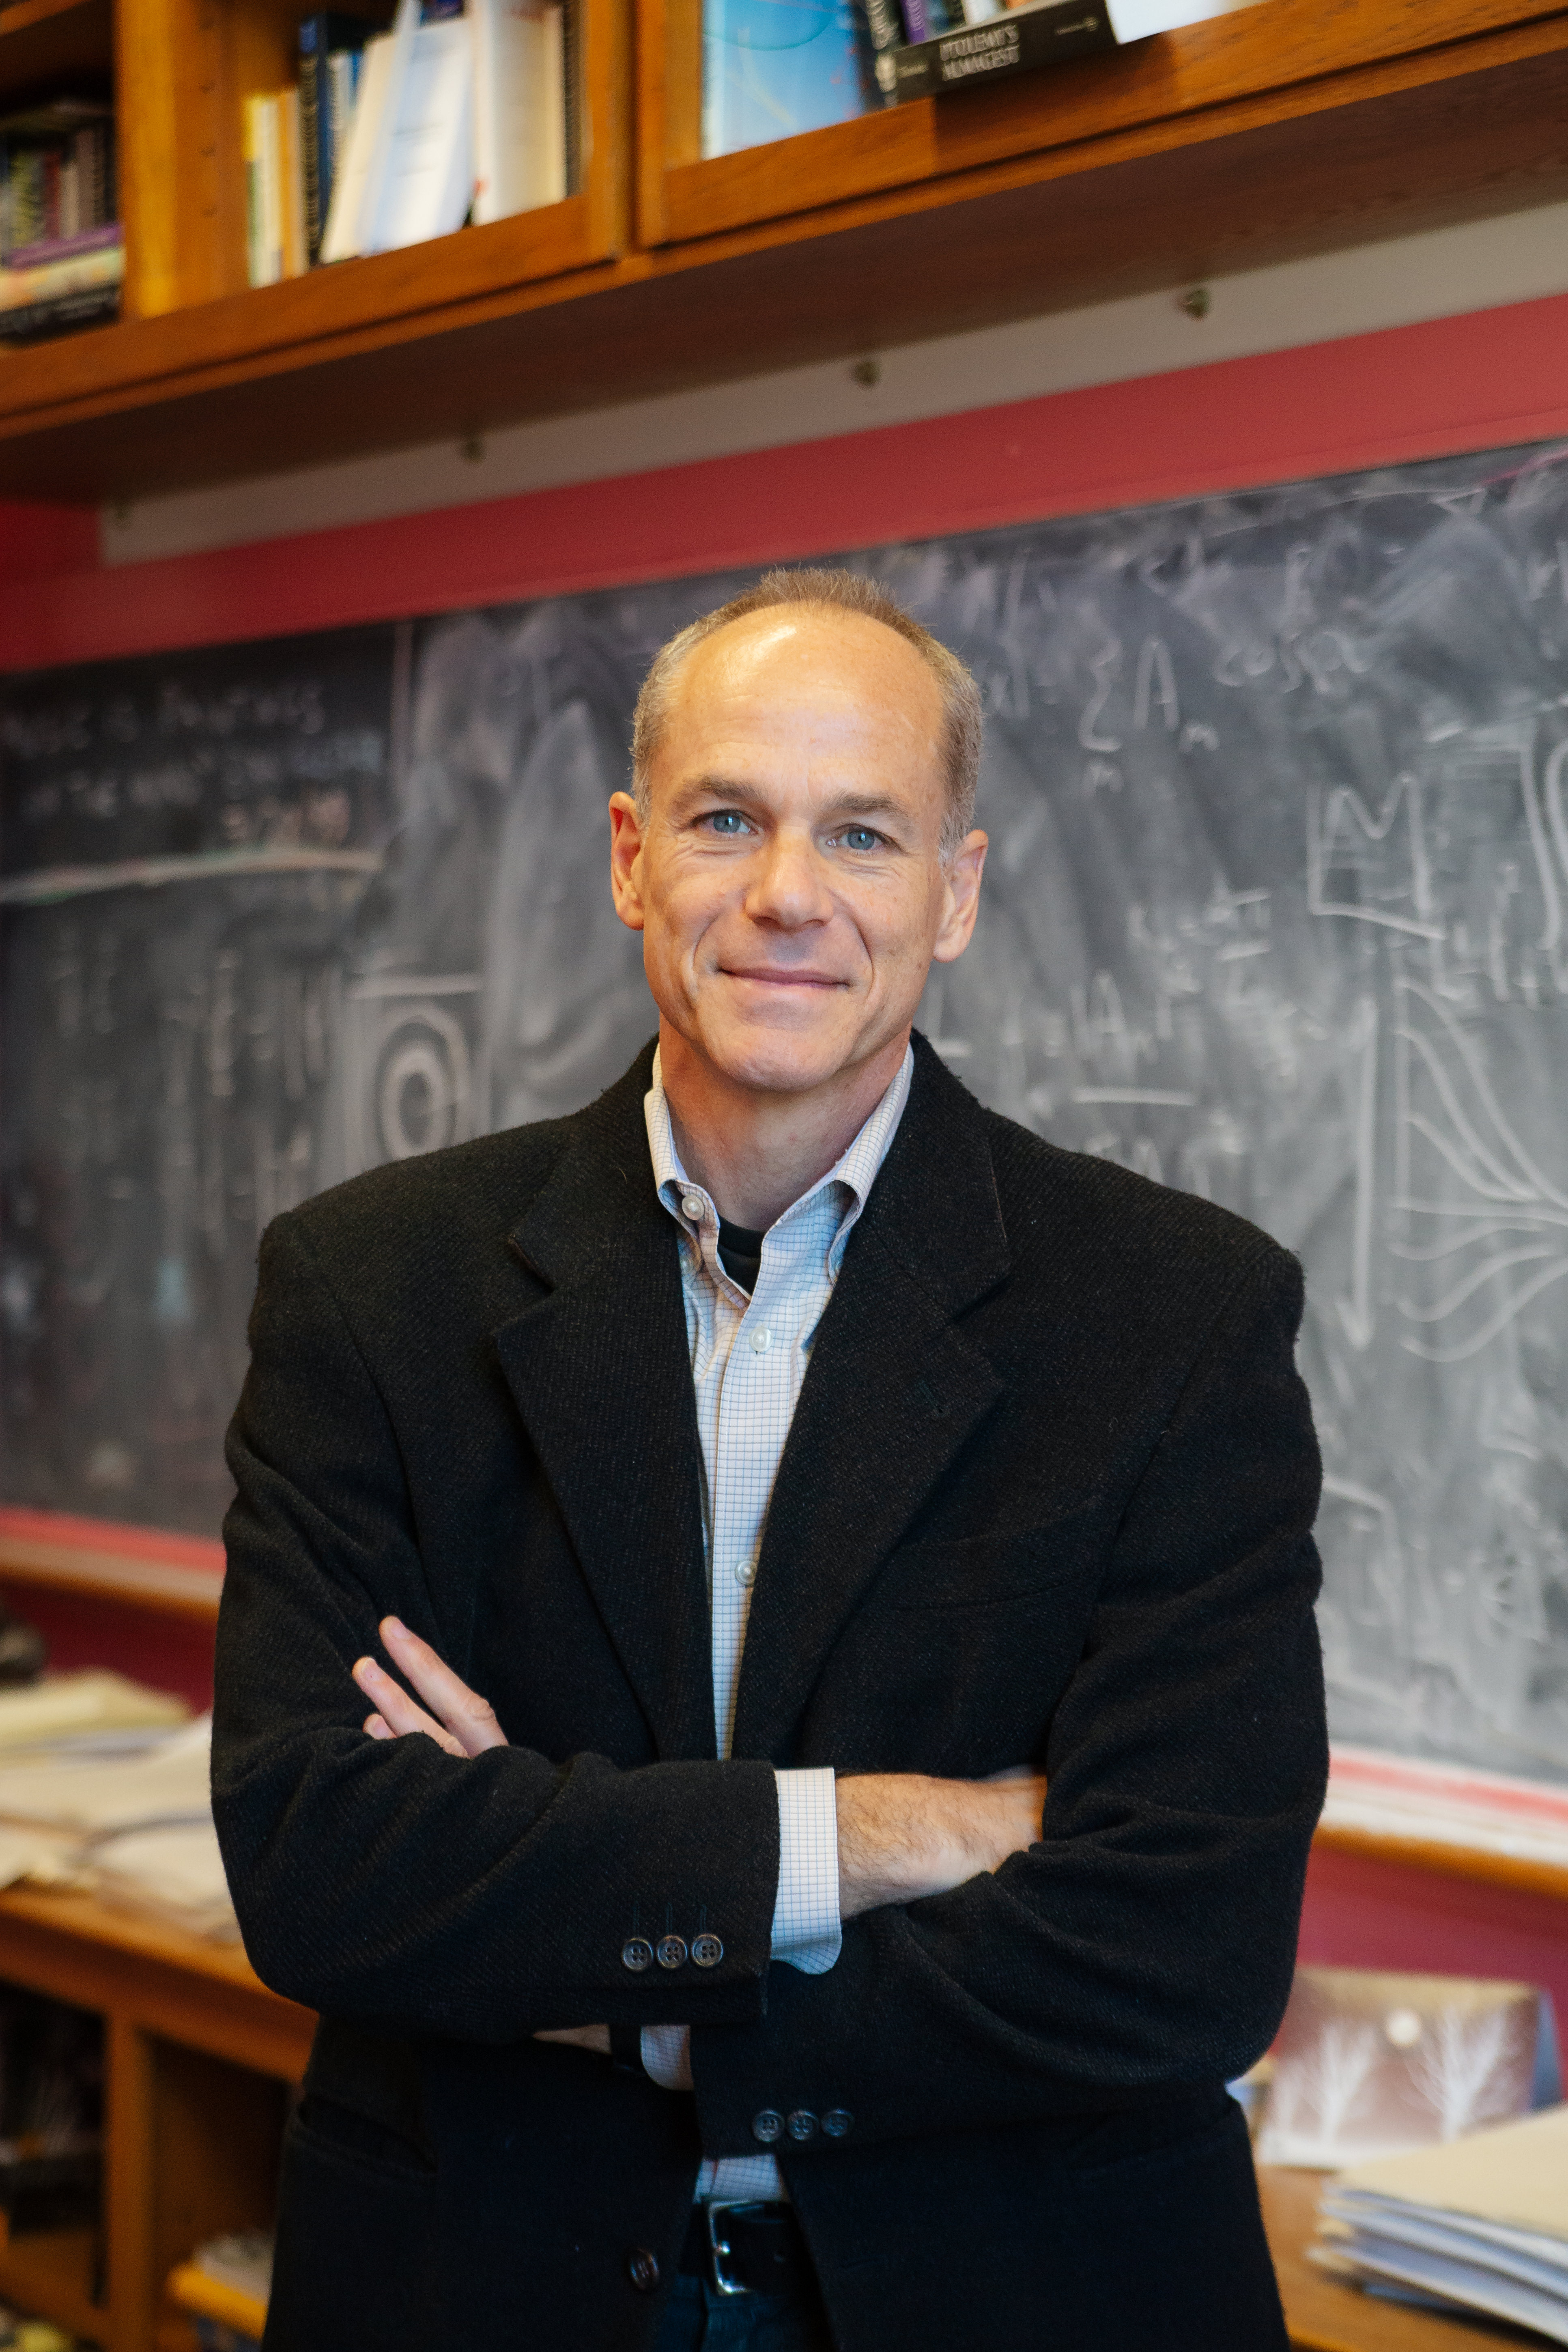 Templeton Prize winner believes science, spirituality are complementary